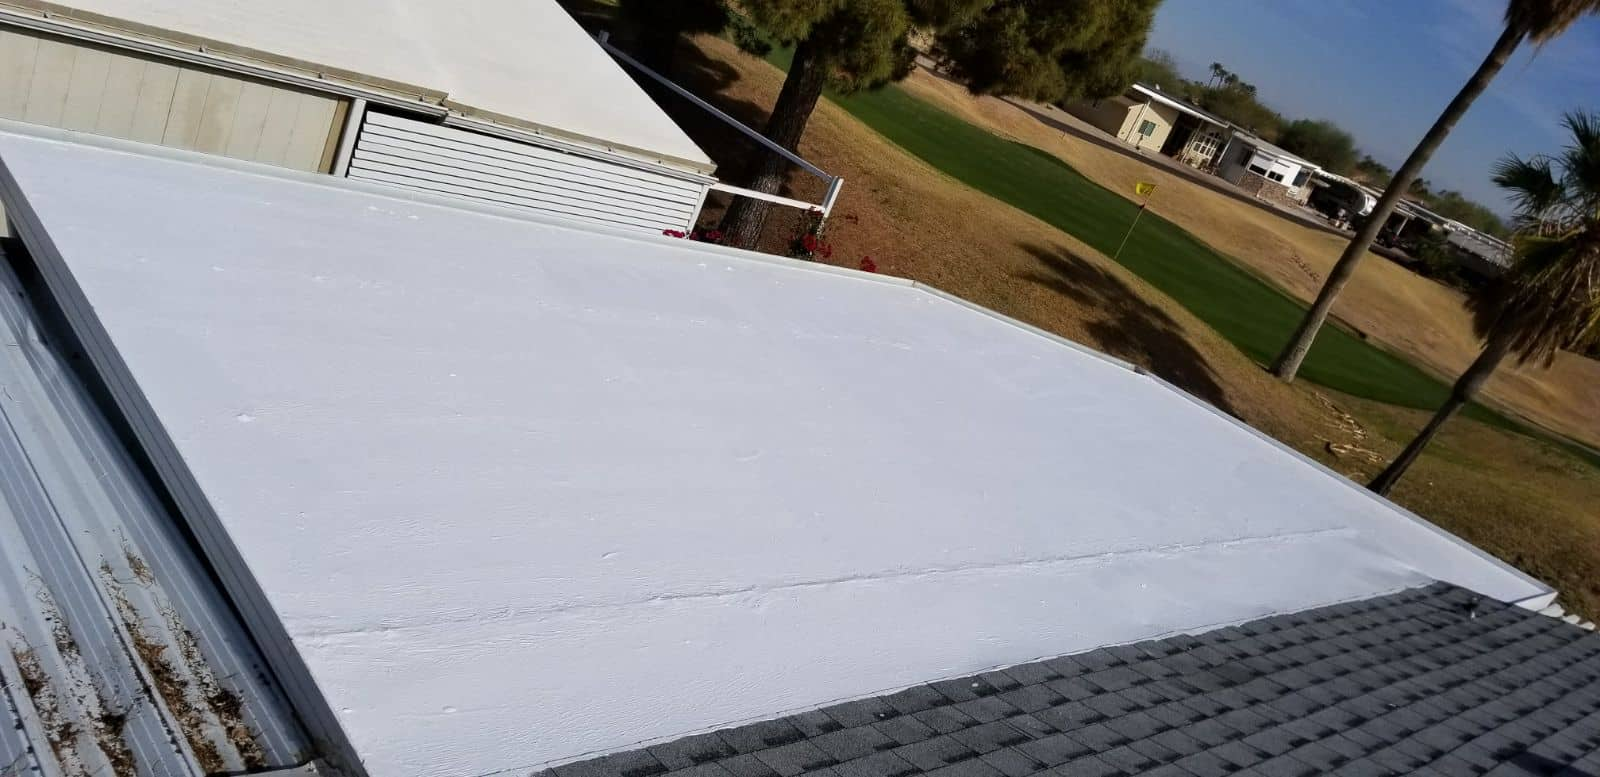 Surprise - Flat Roofing Repair - Castile Roofing